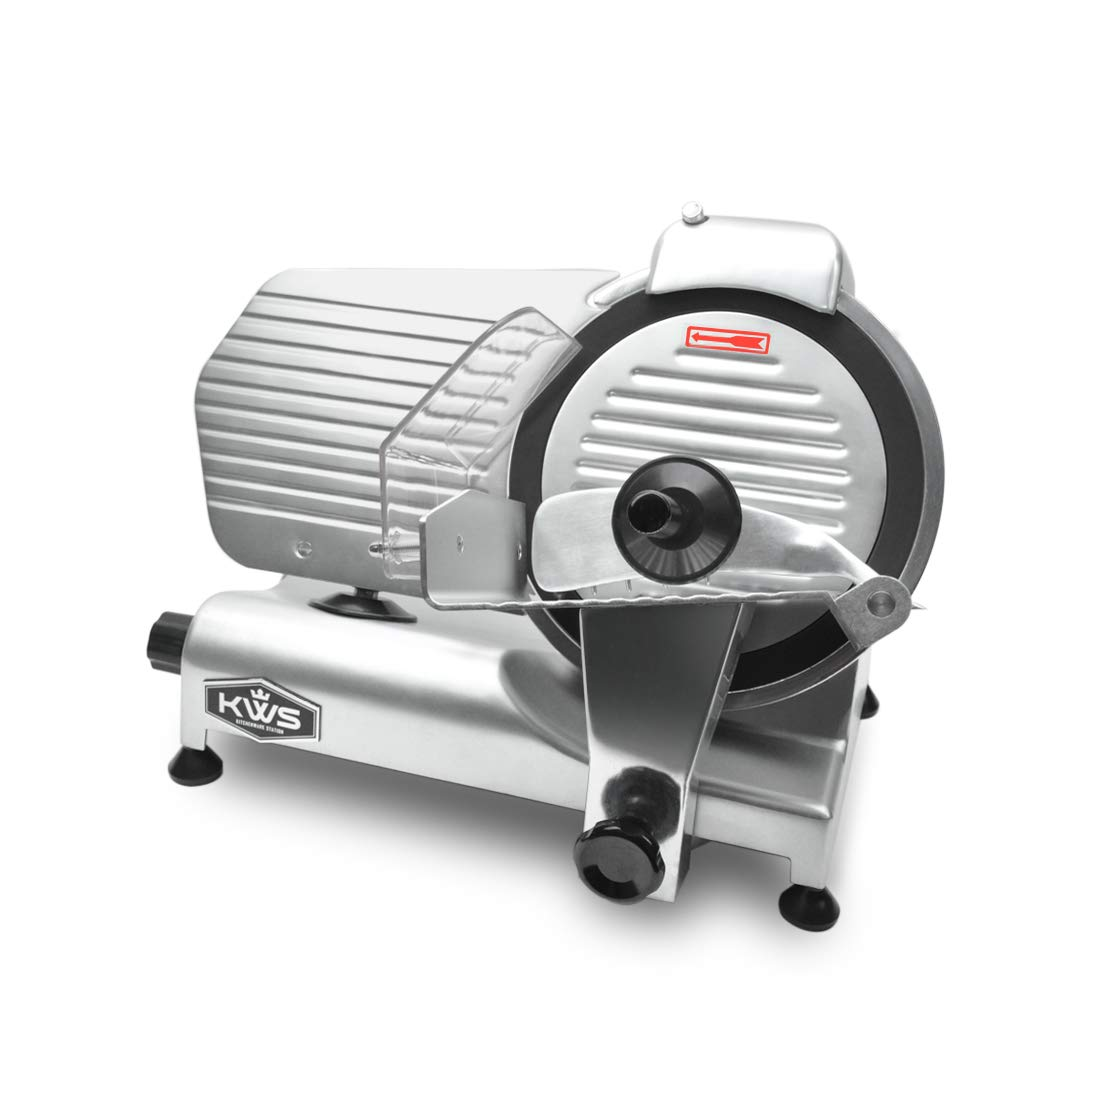 KWS MS-10NT Premium Commercial 320W Electric Meat Slicer 10-Inch with Non-sticky Teflon Blade, Frozen Meat Deli Meat Cheese Food Slicer Low Noises Commercial and Home Use